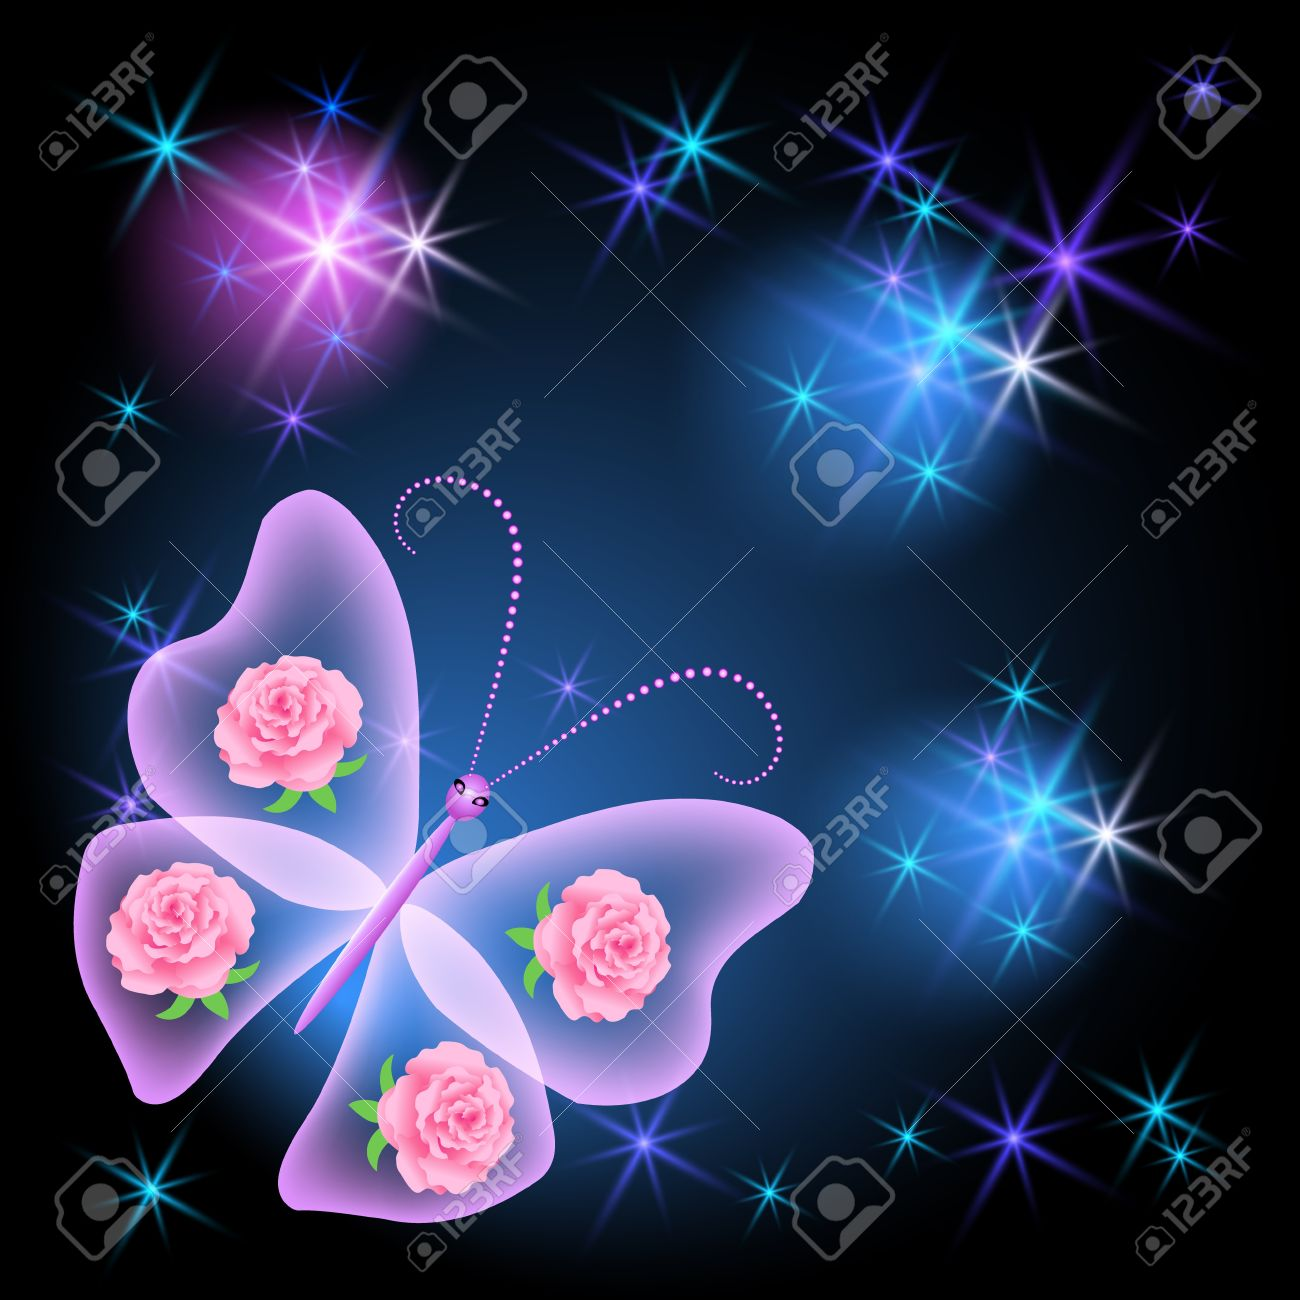 Glowing background transparent butterfly and stars Stock Vector - 10804839